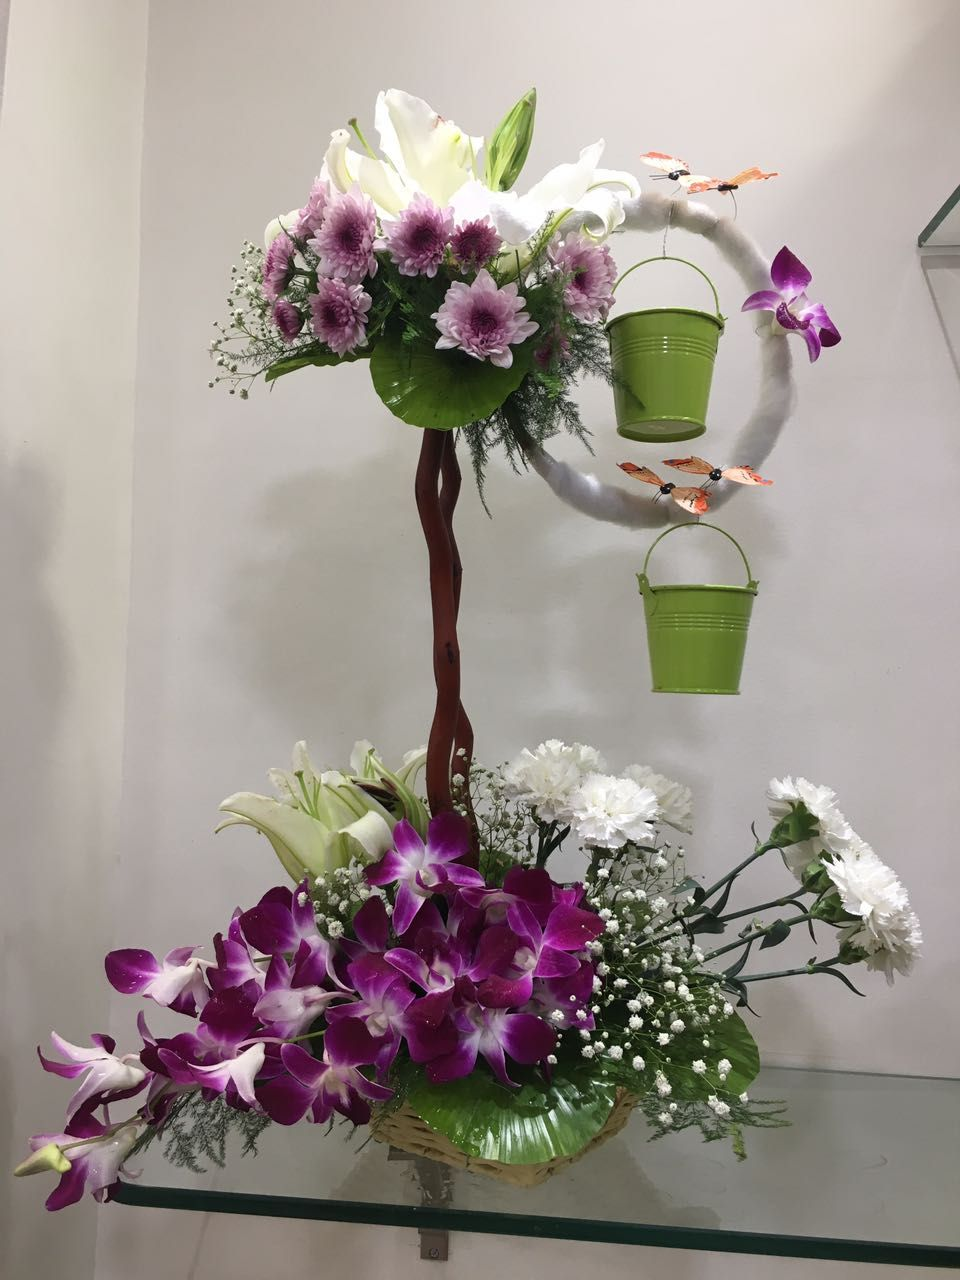 Bloomsonly provide fresh and best flower delivery across